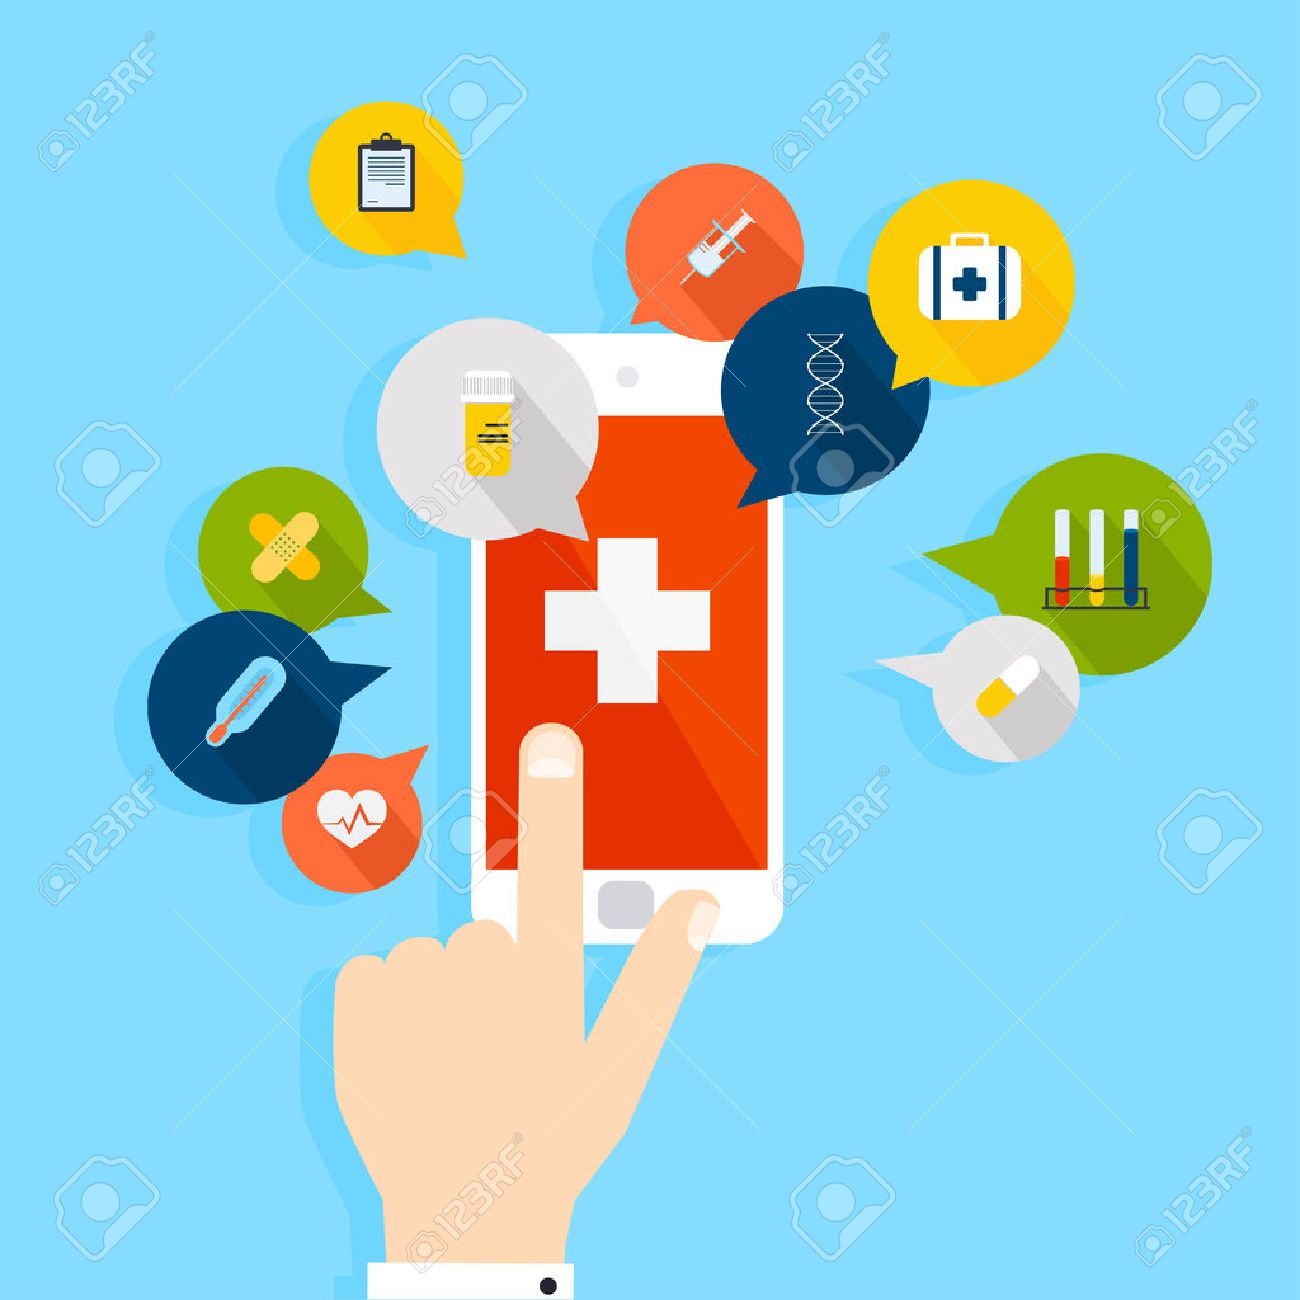 Mobile phone with health application open with hand. Vector modern creative flat design. Vector illustration. Stock Vector - 49501783